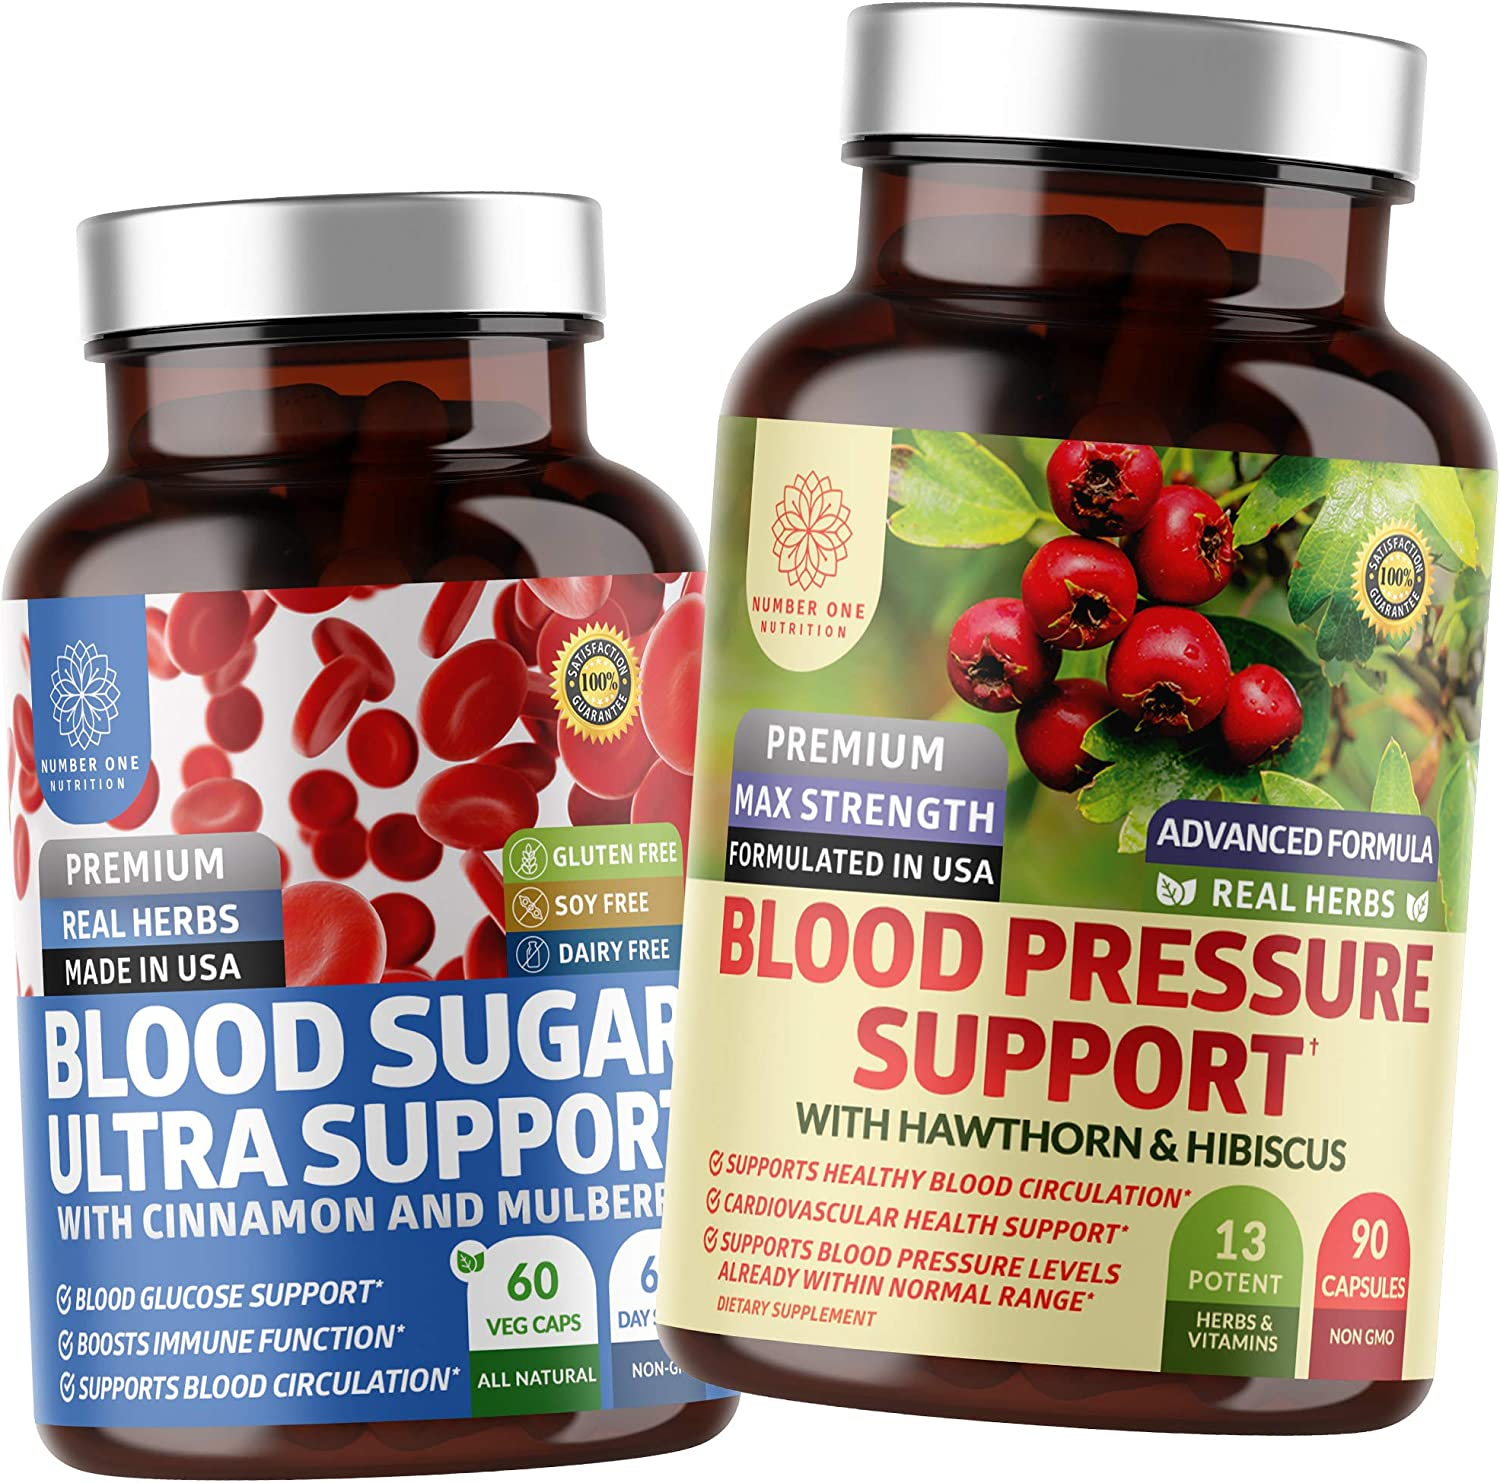 N1N Premium Blood Pressure Support and Blood Sugar Ultra, All Natural Supplements to Support Blood Pressure Levels and Glucose Metabolism, 2 Pack Bundle